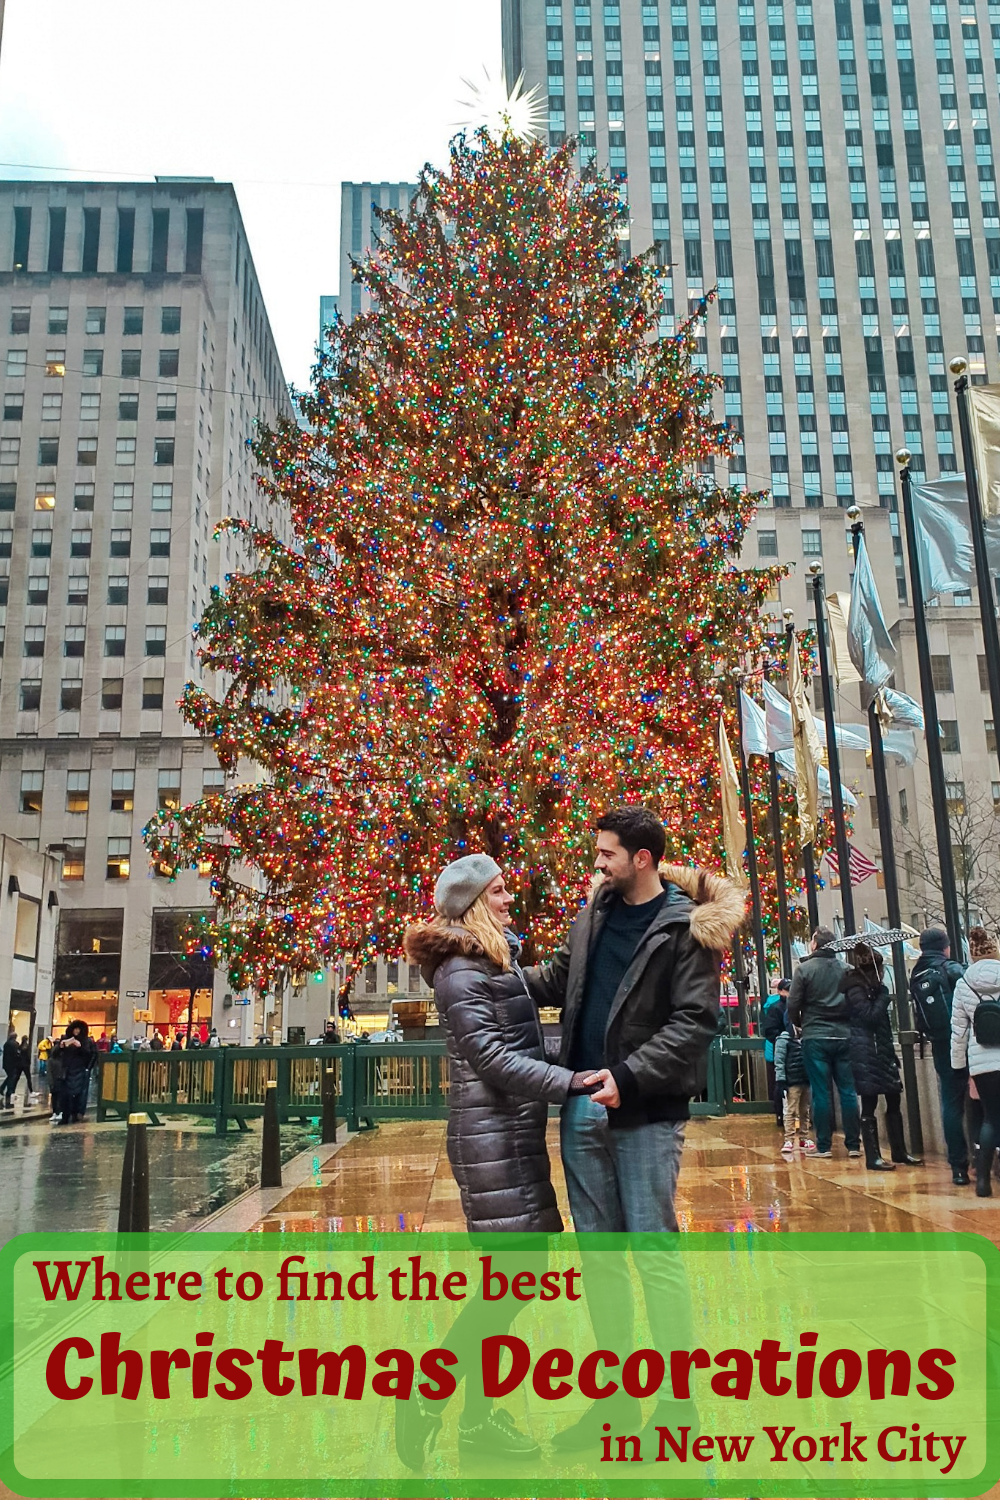 Gigantic Christmas Decorations Nyc 2020 Where to find the best Christmas Decorations in New York City